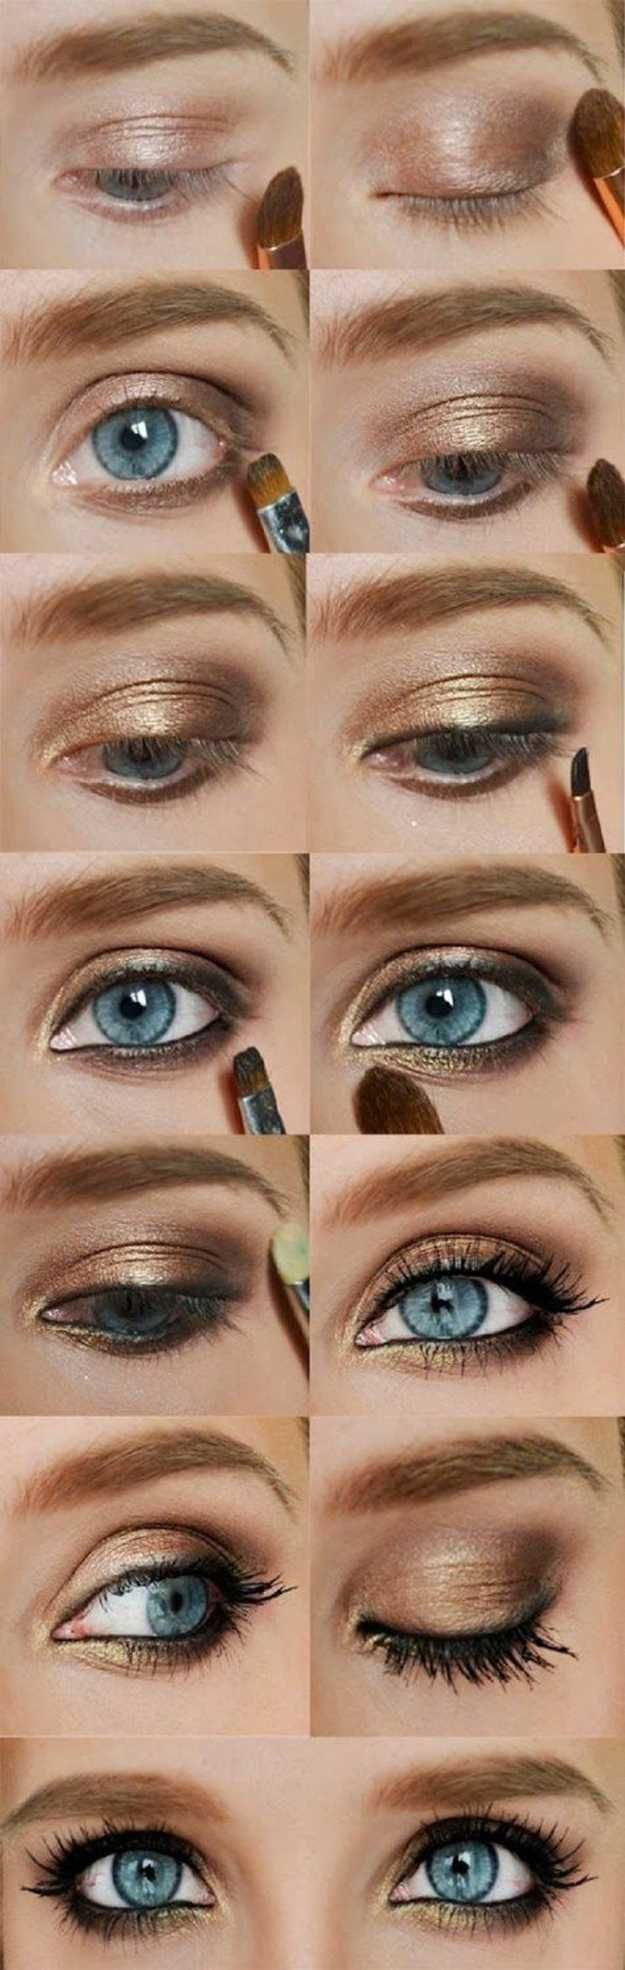 Gold Eyeshadow | Colorful Eyeshadow Tutorials | Makeup Tutorials